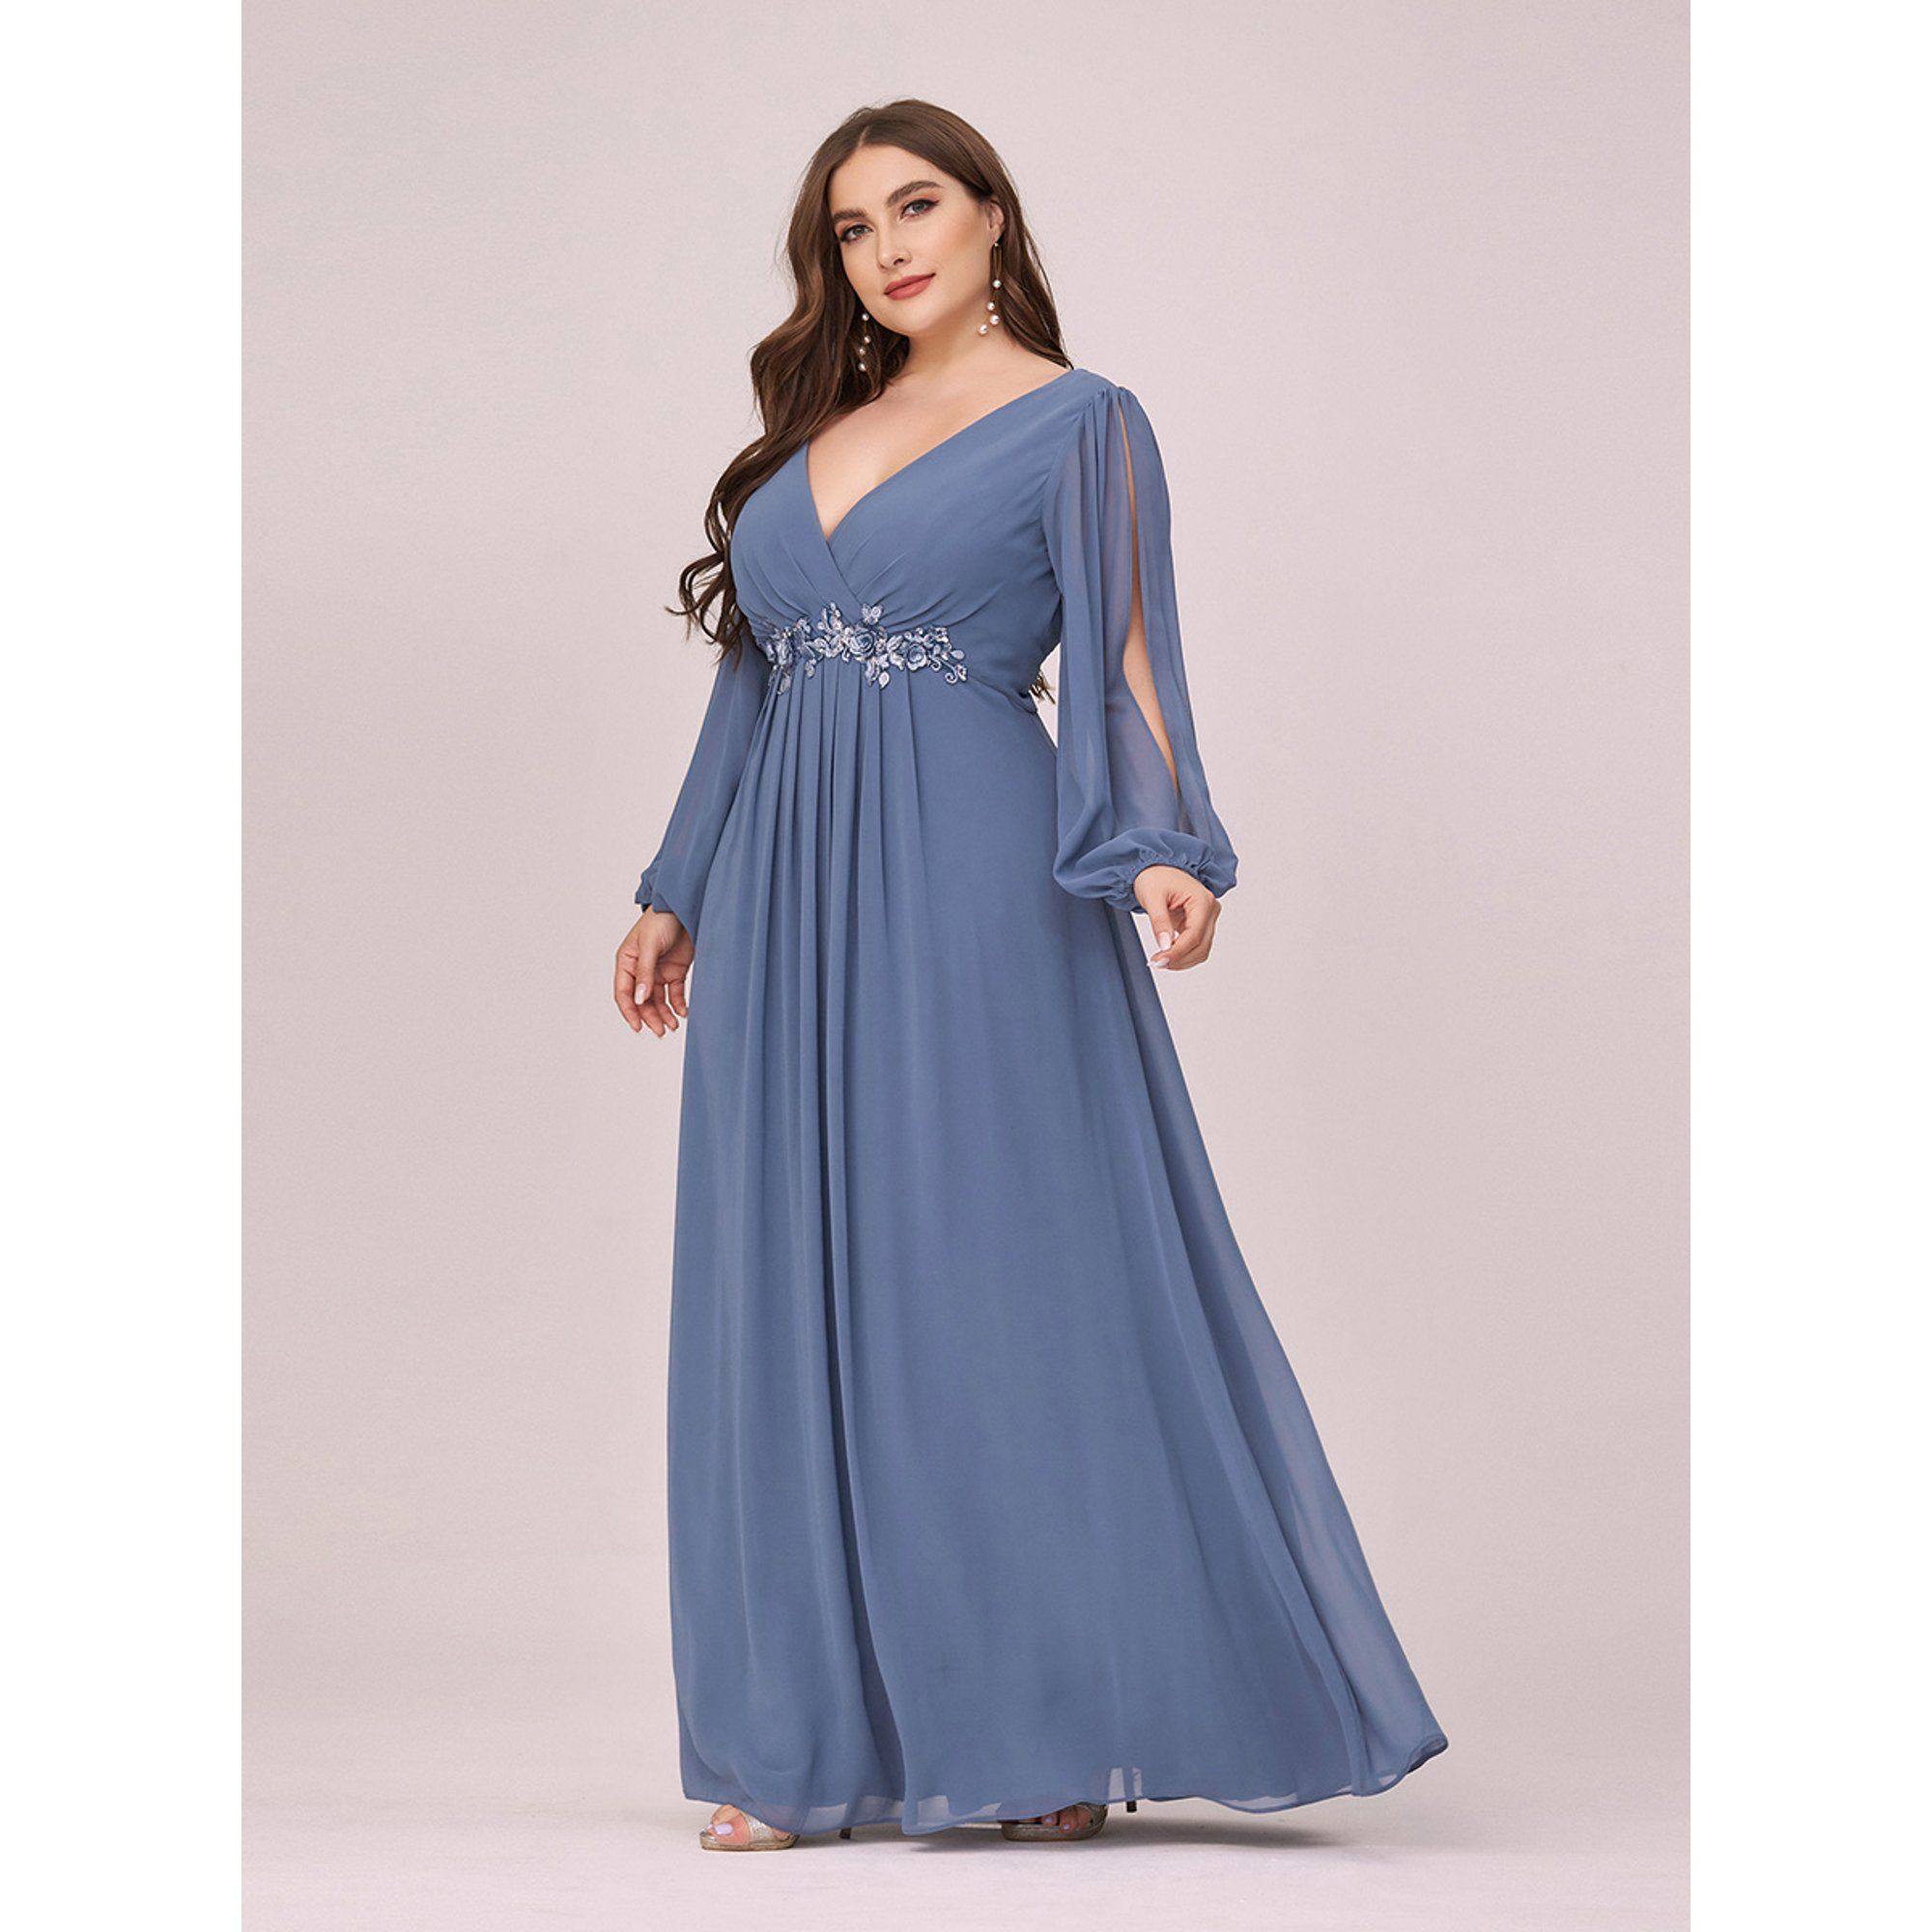 Ever Pretty Ever Pretty Women S Plus Size A Line Long Sleeve V Neck Chiffon Mother Of The Bride Dress 00461 Dusty Blue Us16 Walmart Com In 2021 Bridesmaid Dresses Plus Size Evening Dresses Plus [ 2000 x 2000 Pixel ]